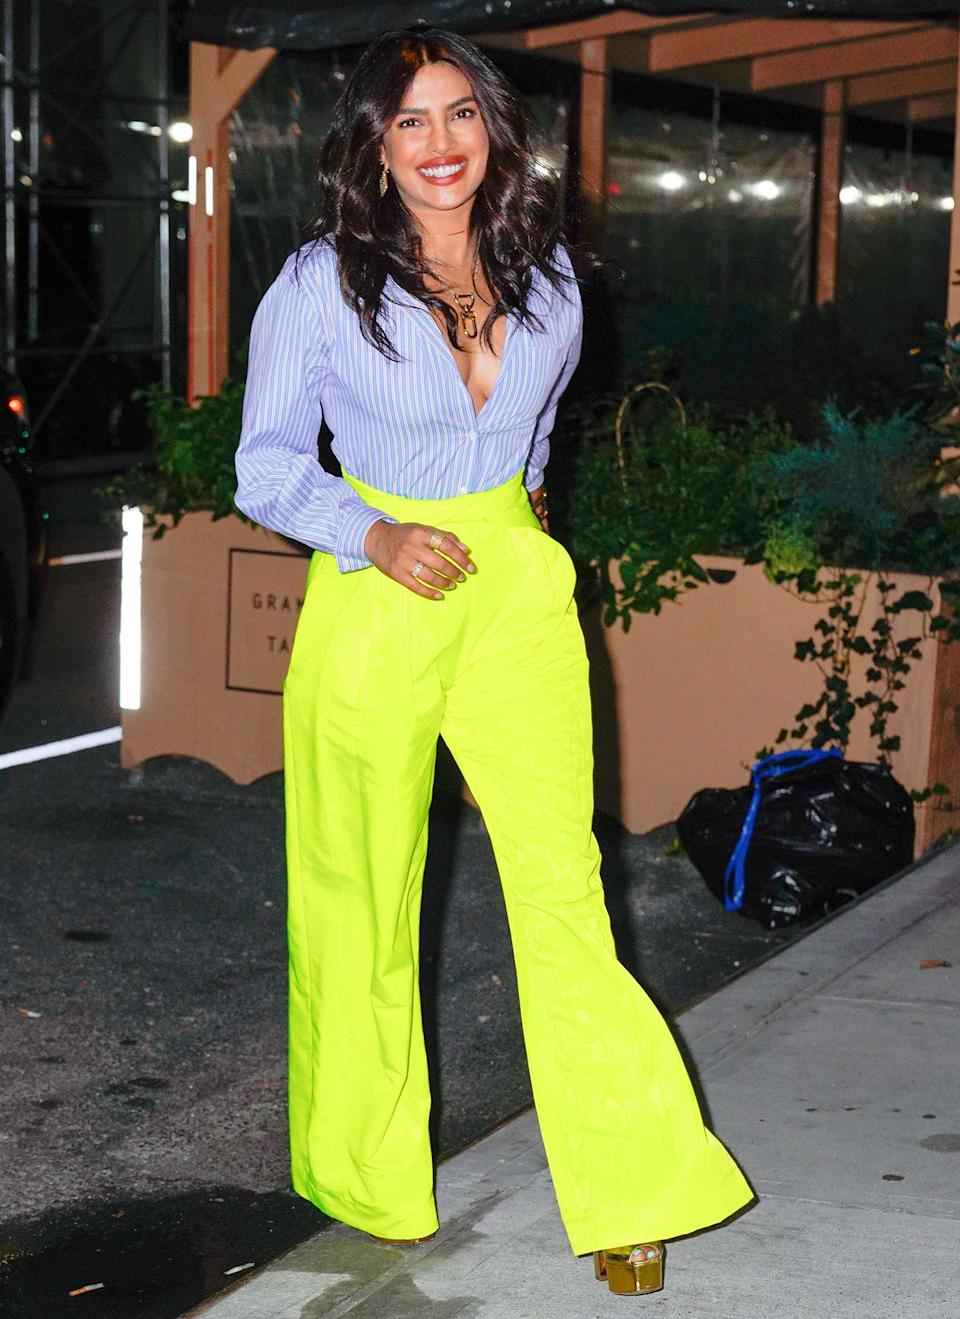 <p>Priyanka Chopra makes a colorful statement at the opening of her new Indian restaurant Sona in New York.</p>